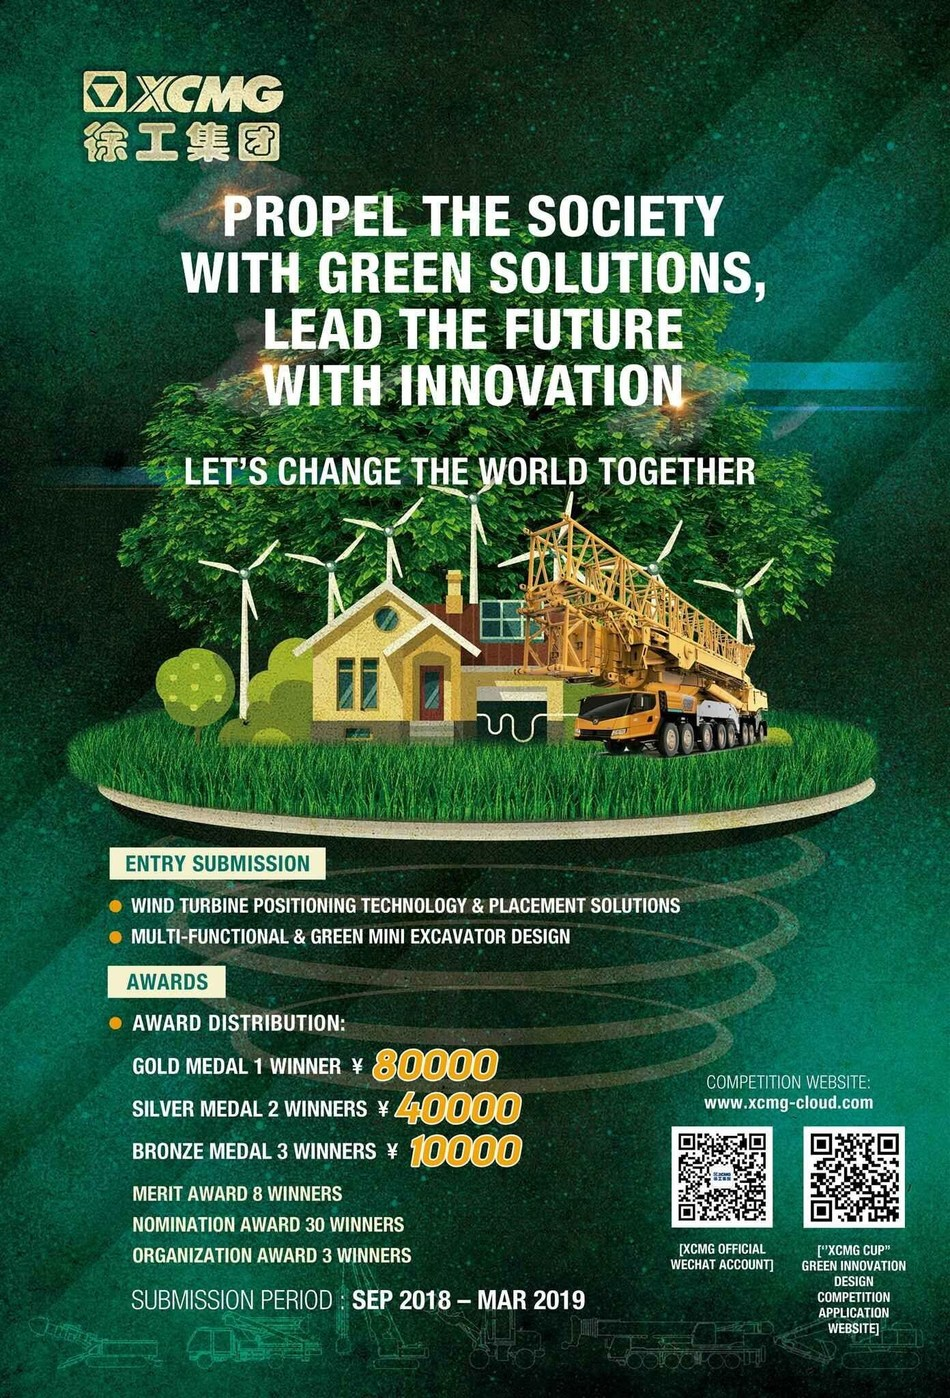 XCMG Now Accepting Entries of Advance Sustainable Construction Solutions for This Year's XCMG Cup.